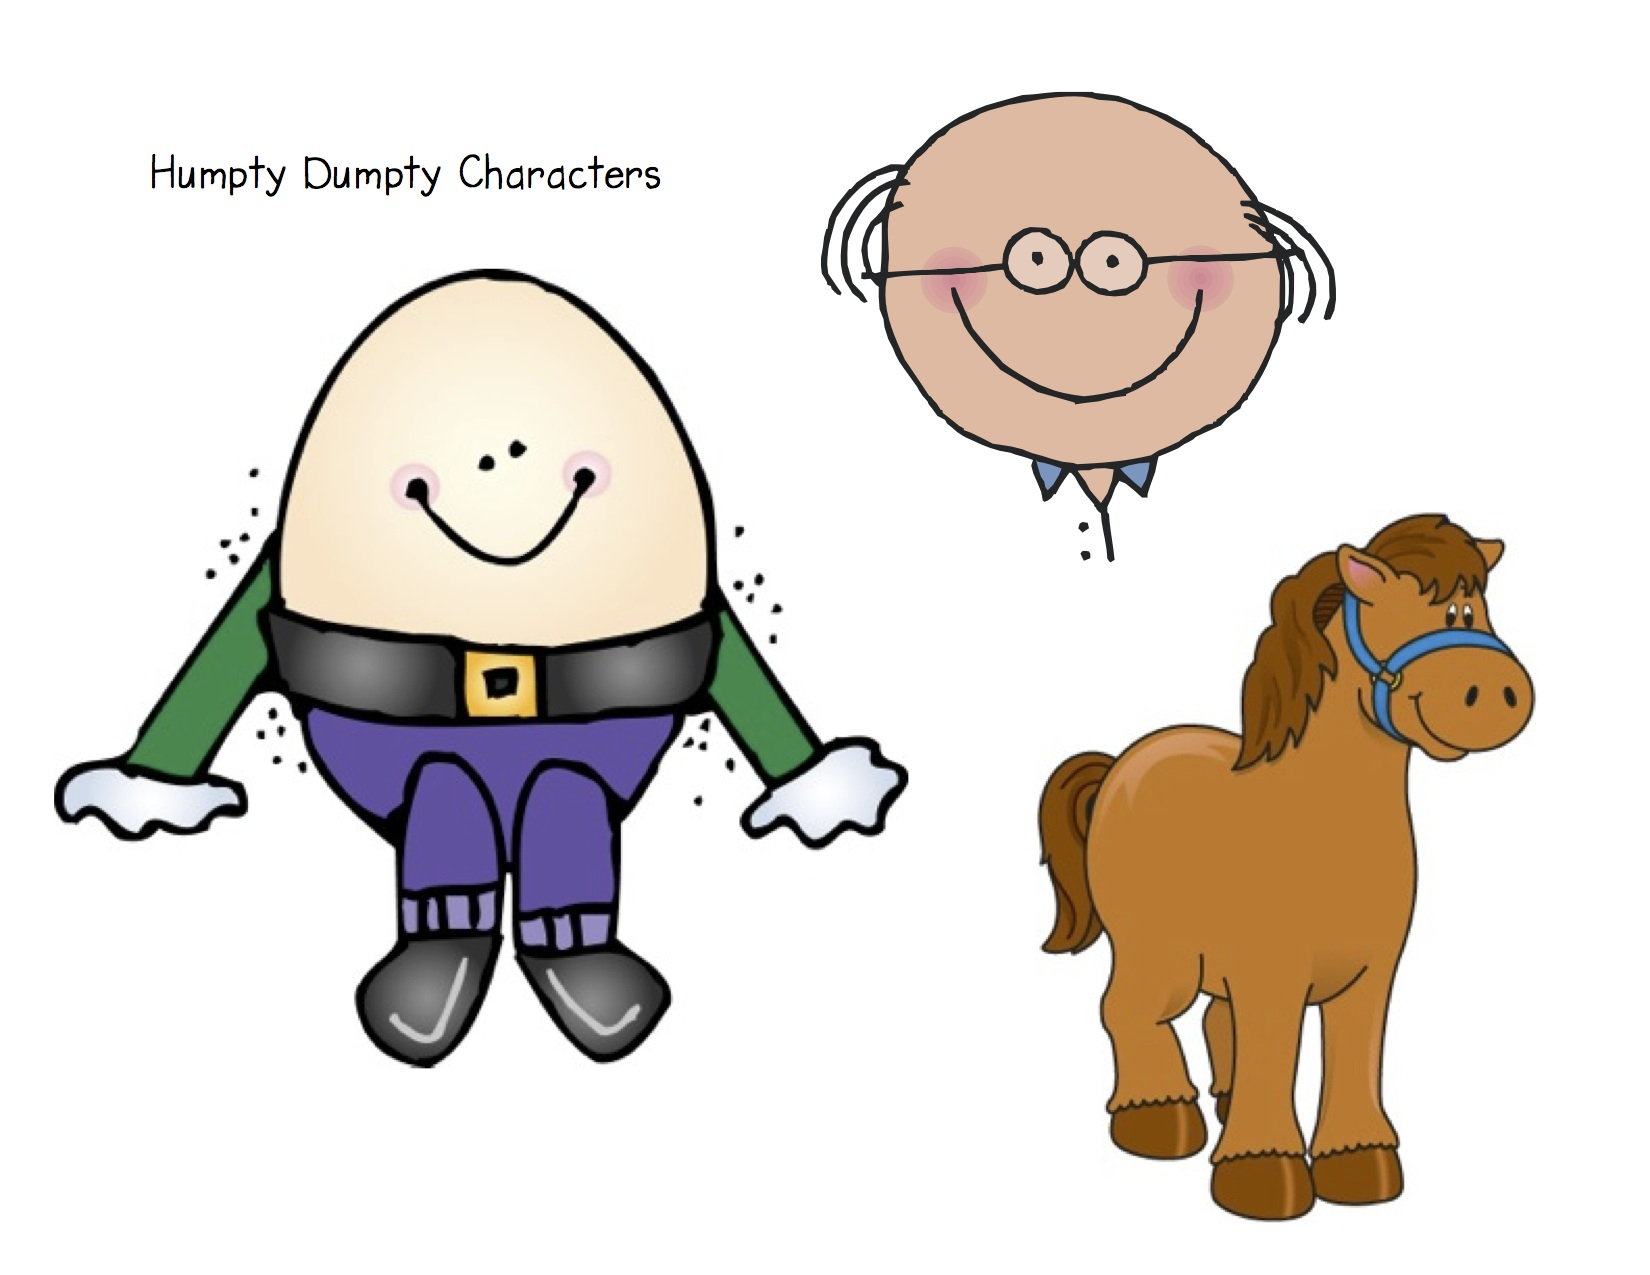 ... Humpty Dumpty Clipart | Hostted ...-... humpty dumpty clipart | Hostted ...-10